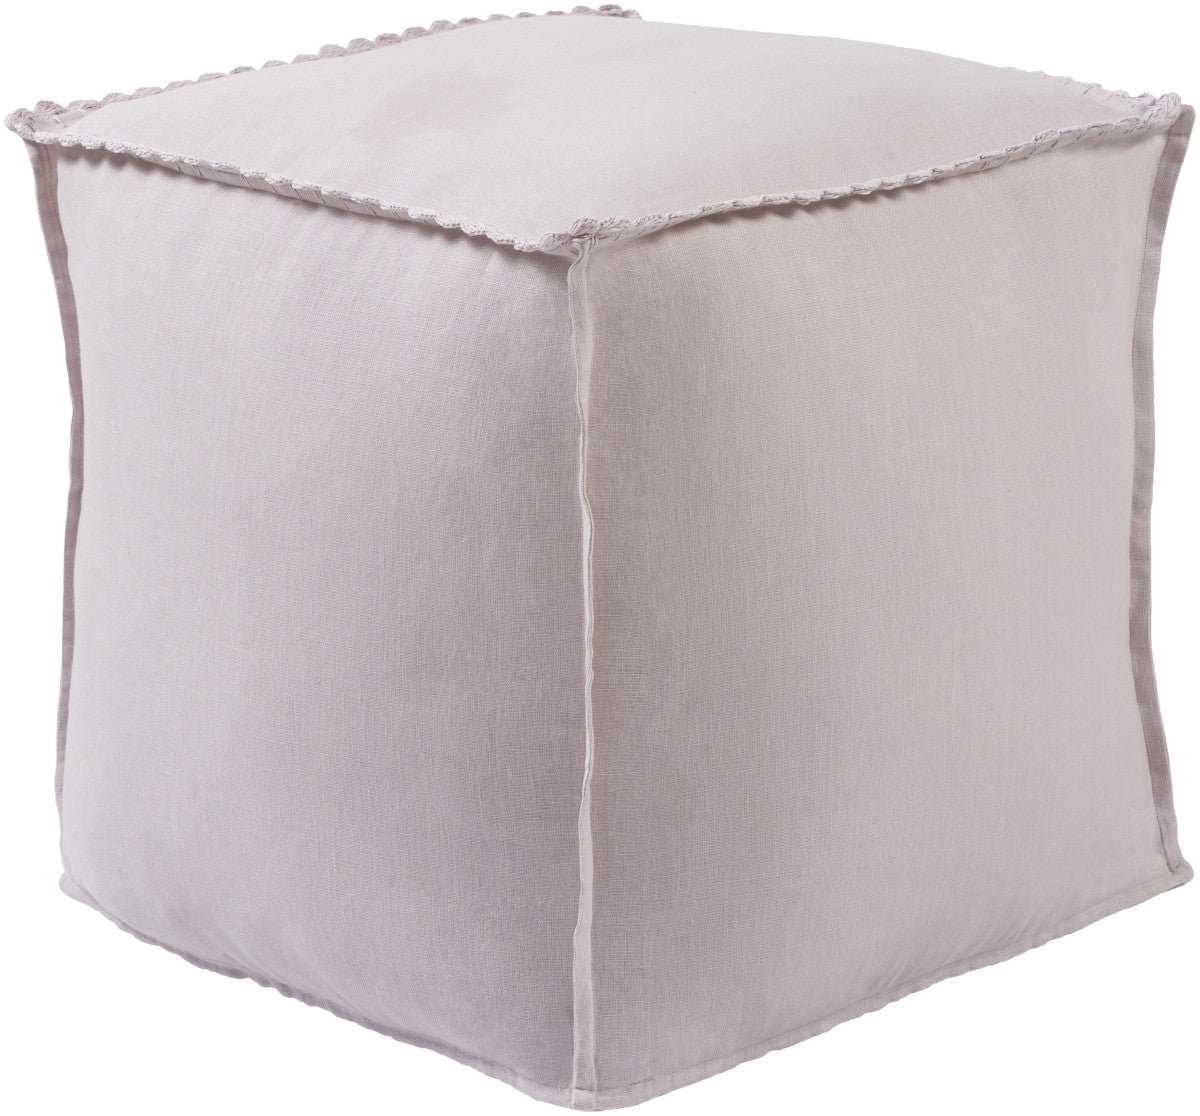 Surya Evelyn EVPF-003 Pouf